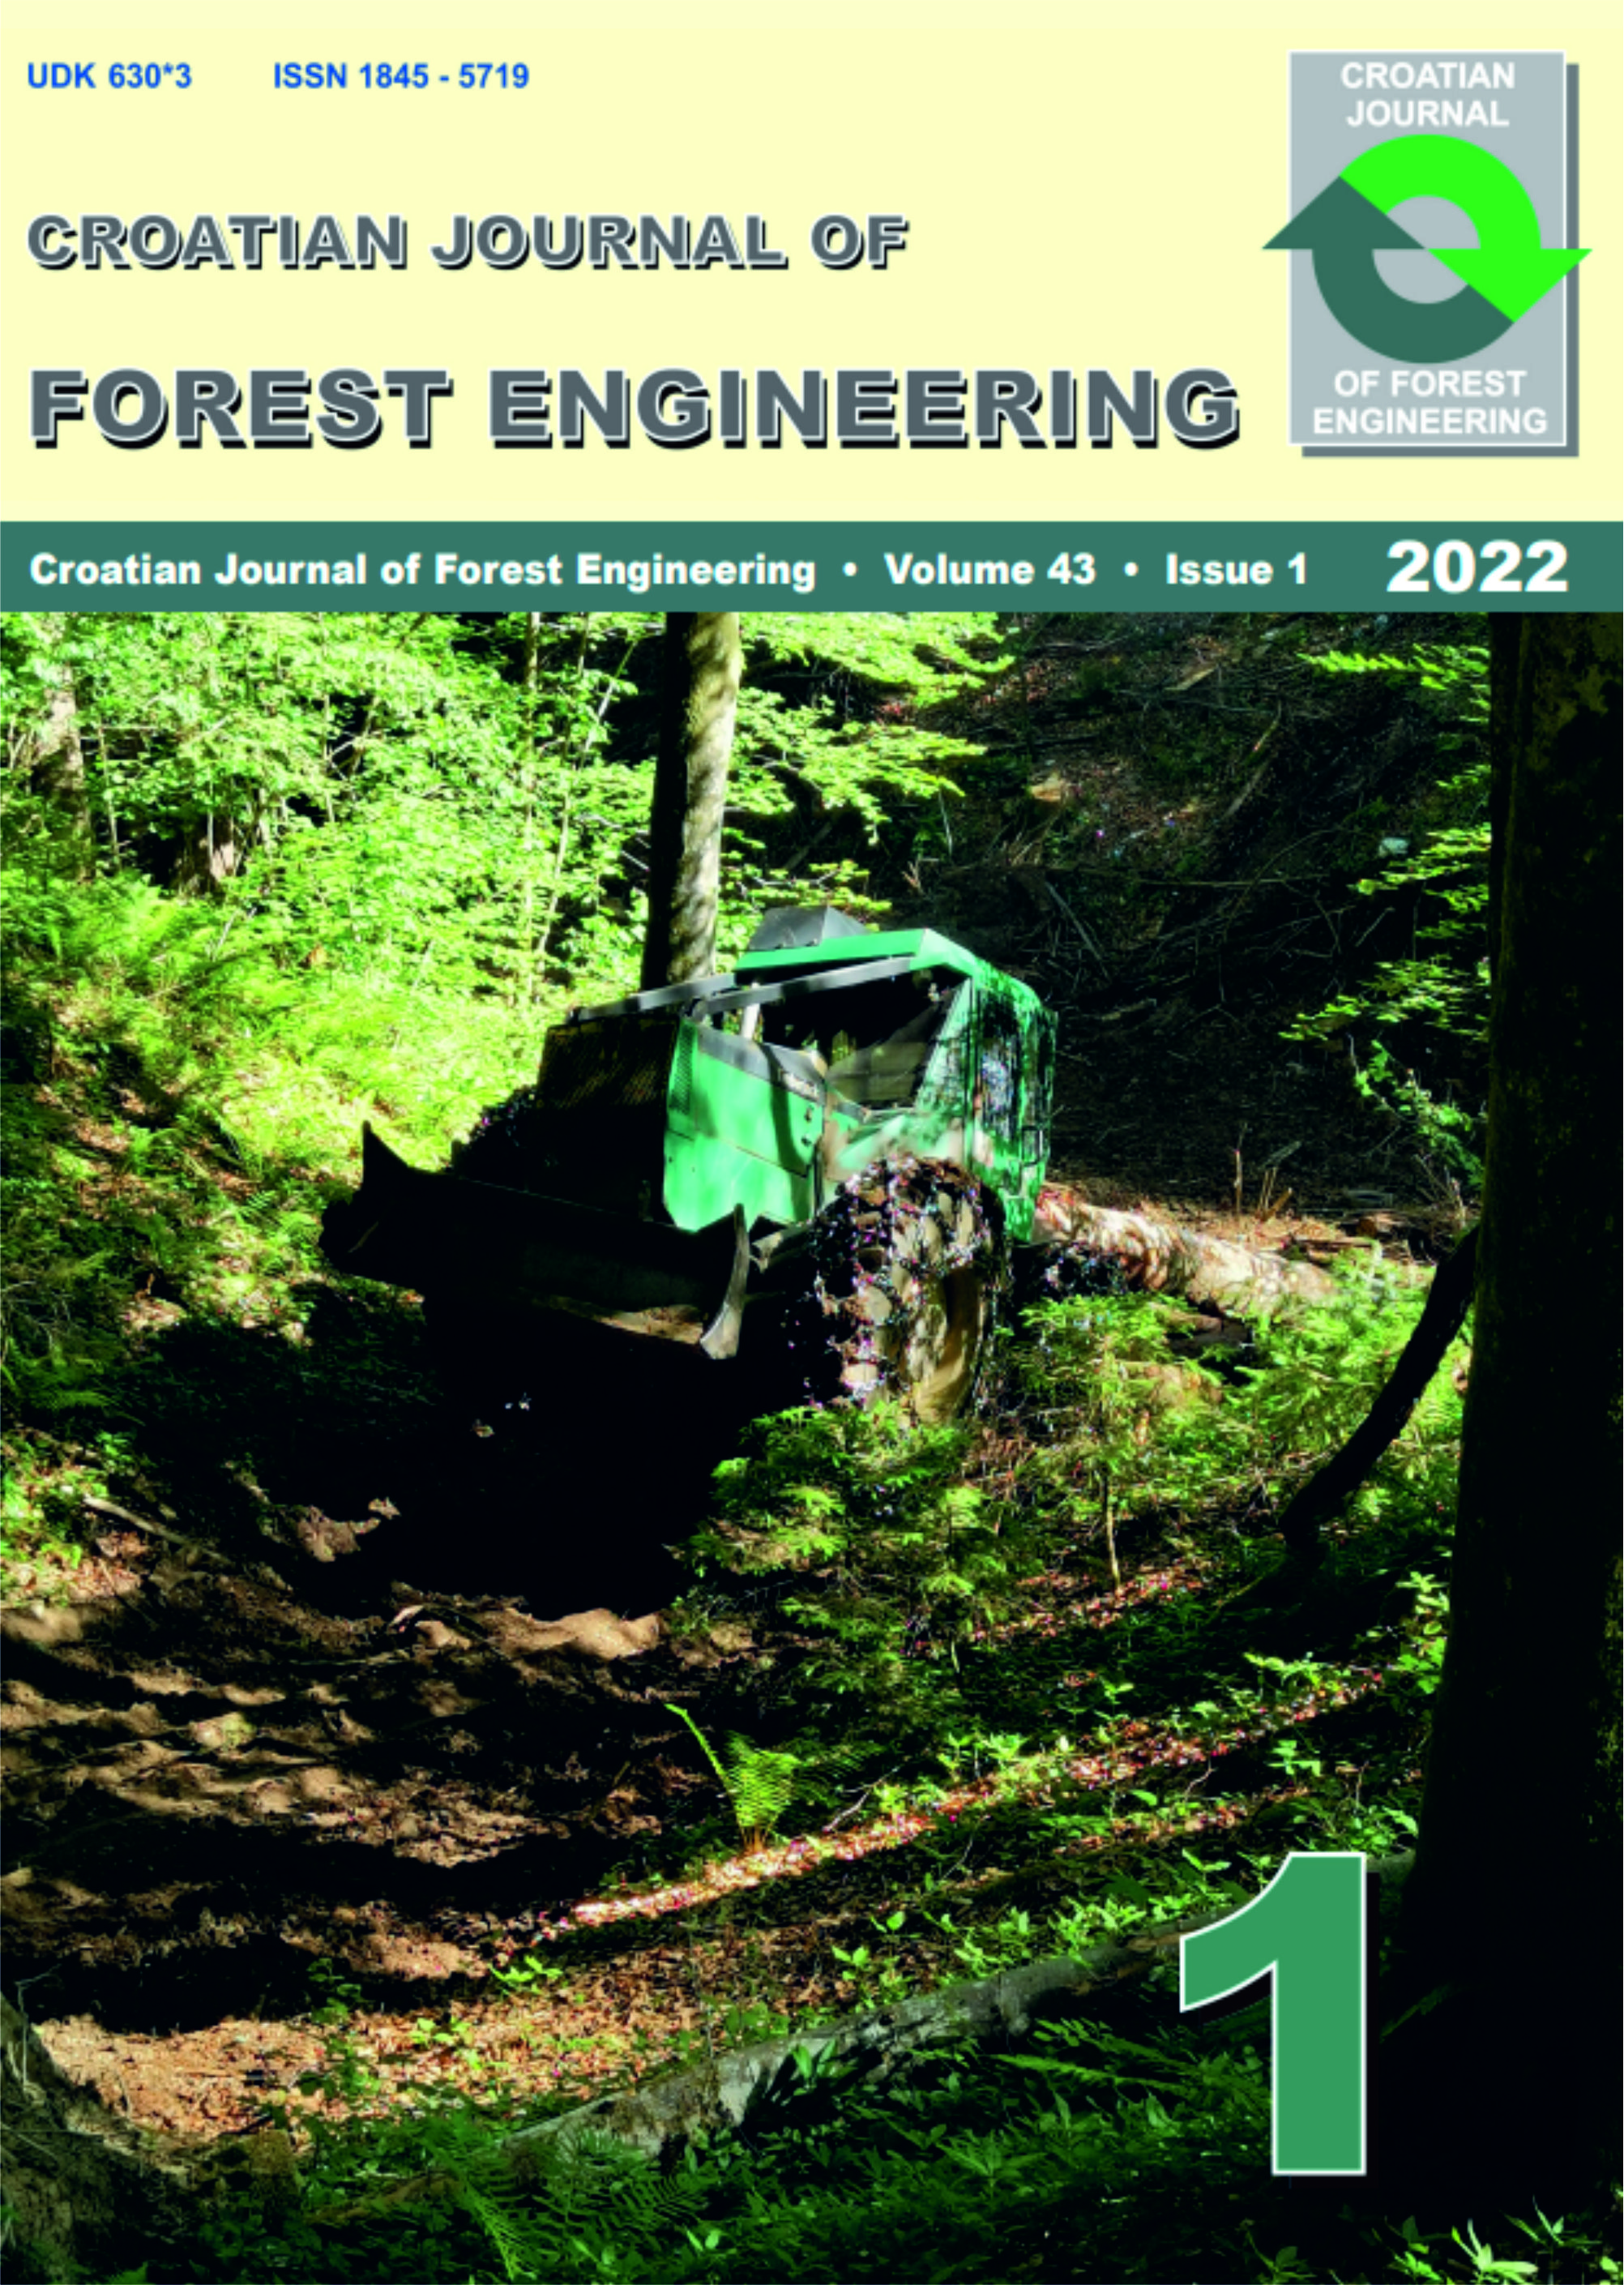 logo Croatian Journal of Forest Engineering